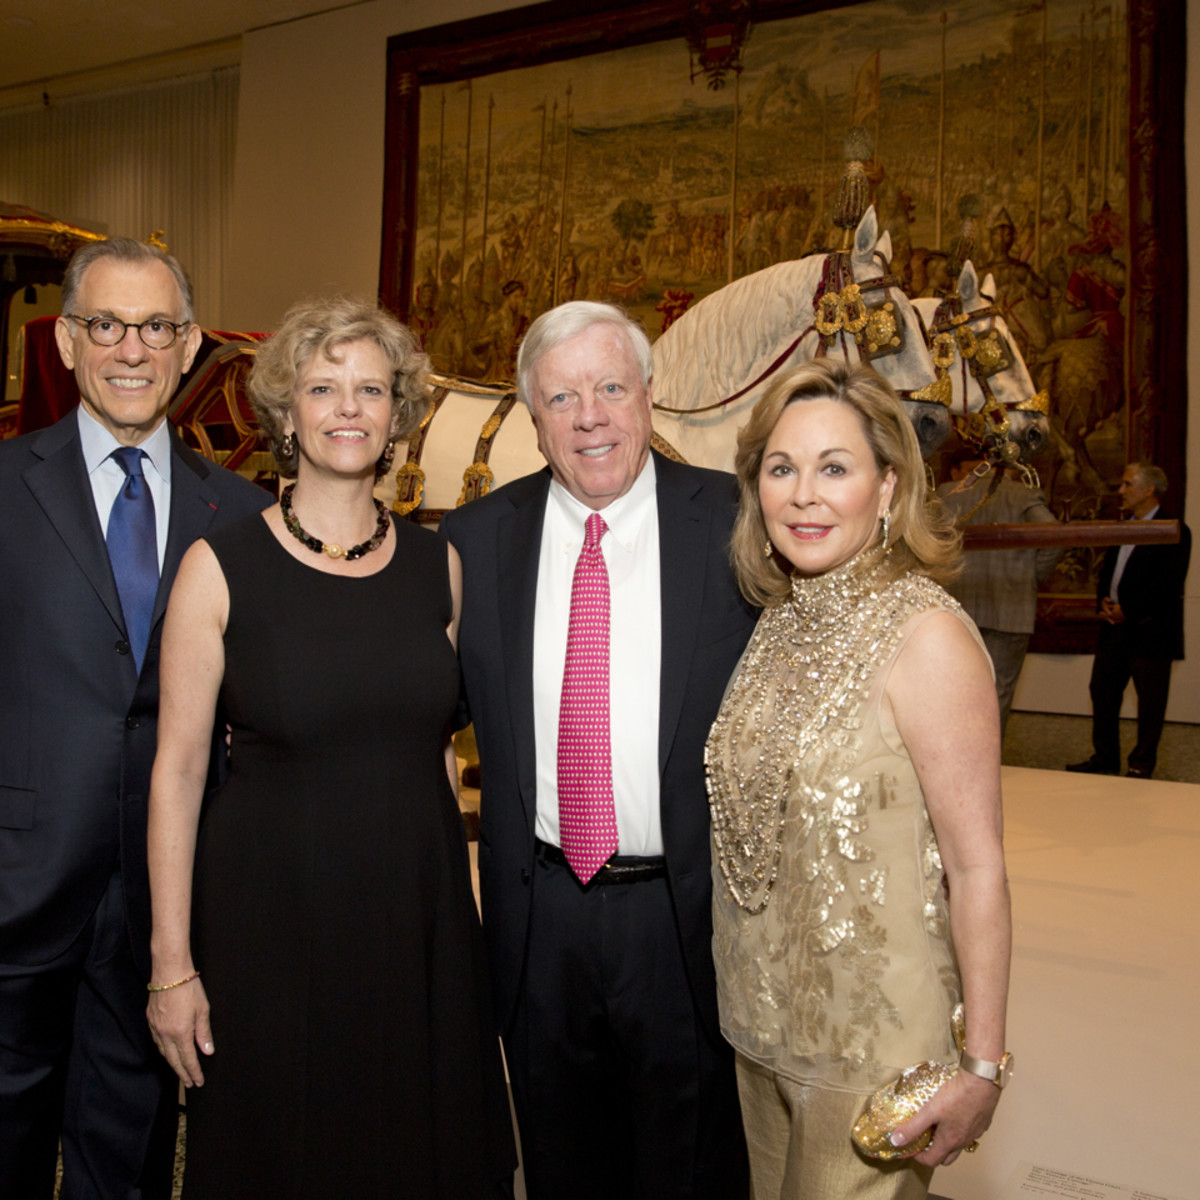 MFAH Habsburg Splendor dinner Gary Tinterow; Sabine Haag; Rich and Nancy Kinder